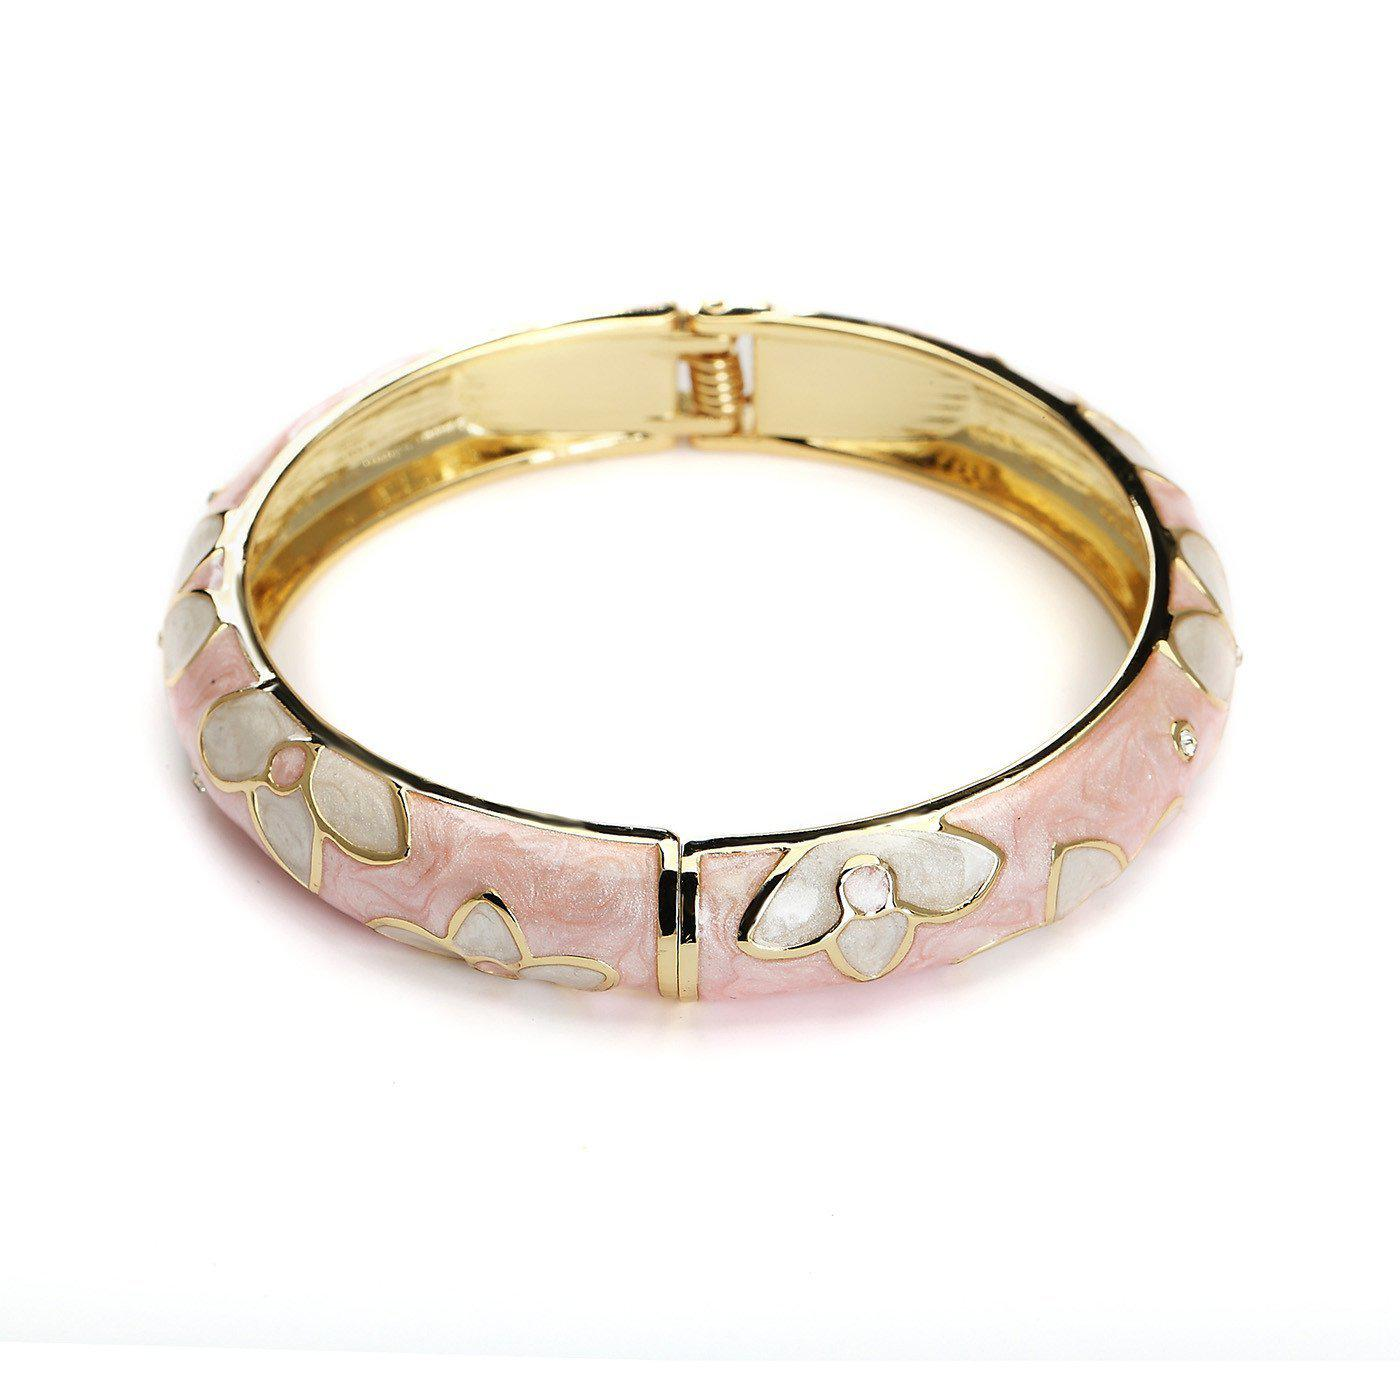 Floral Edge Metallic Fashion Bangle-Blinglane